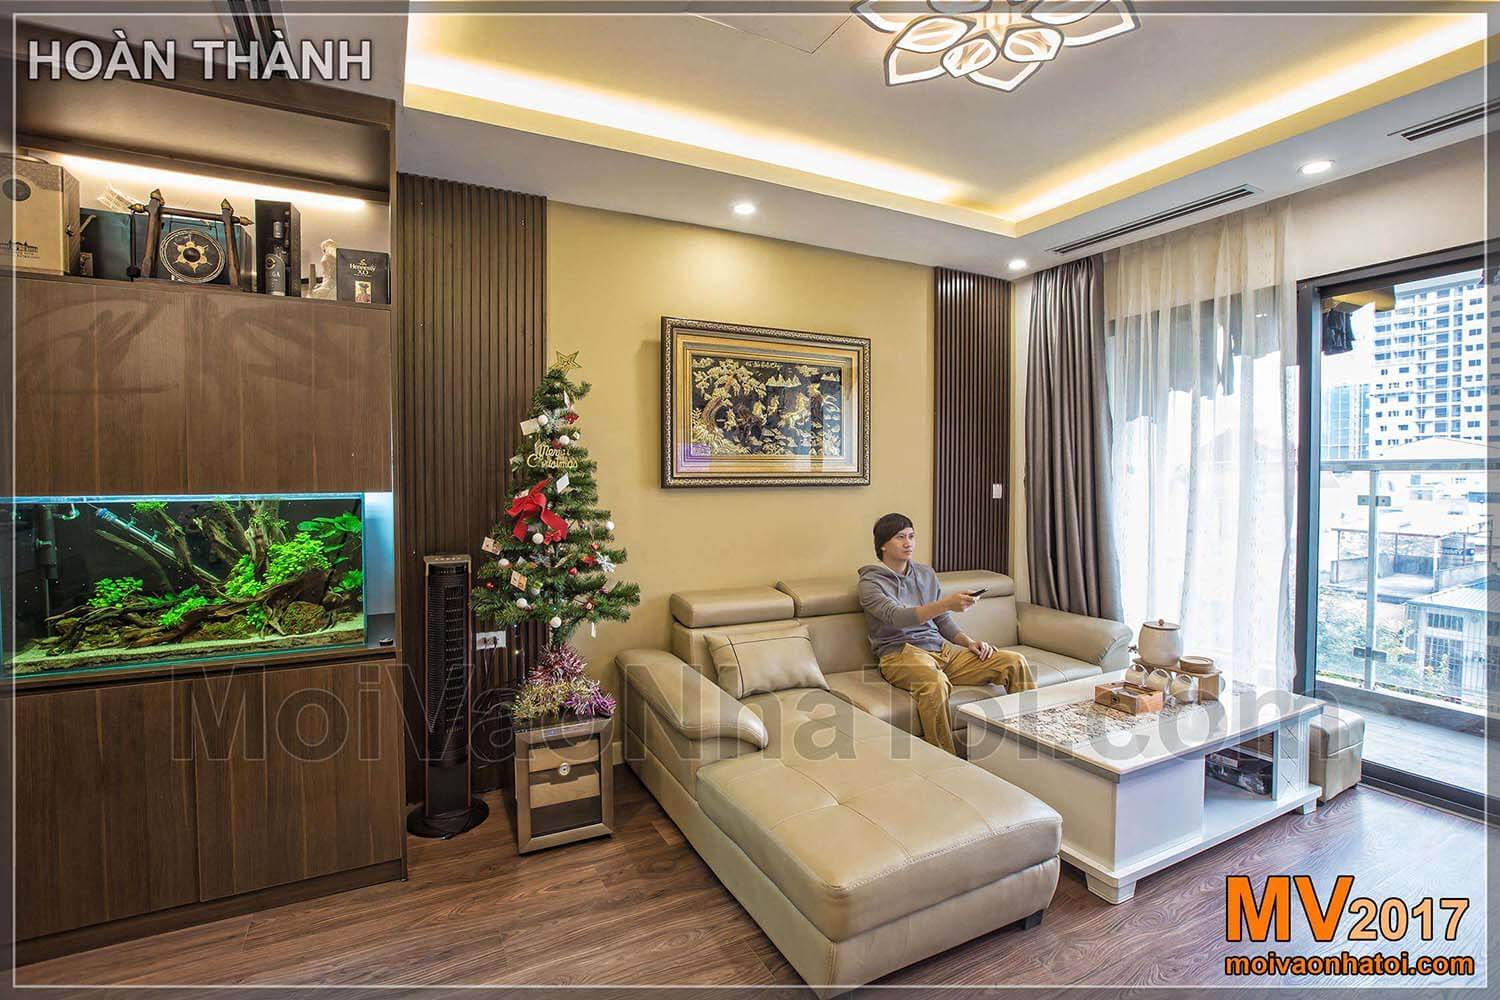 The living room of IMPERIA GARDEN HANOI apartment after completion